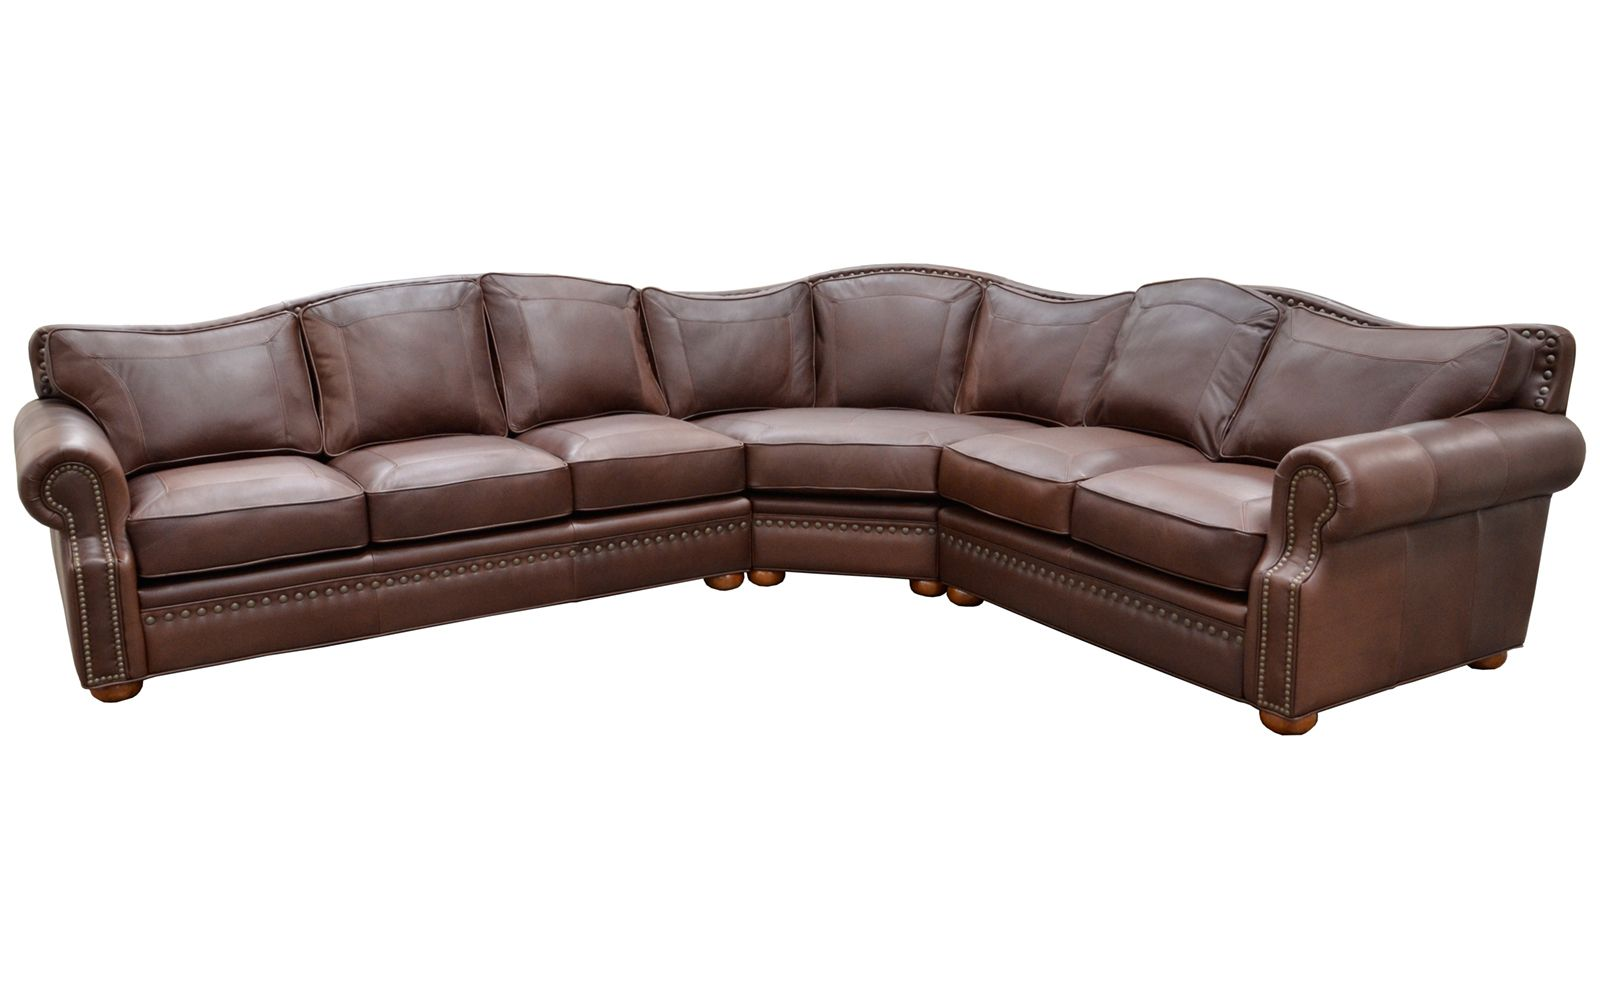 Tucson sectional for the home pinterest custom leather